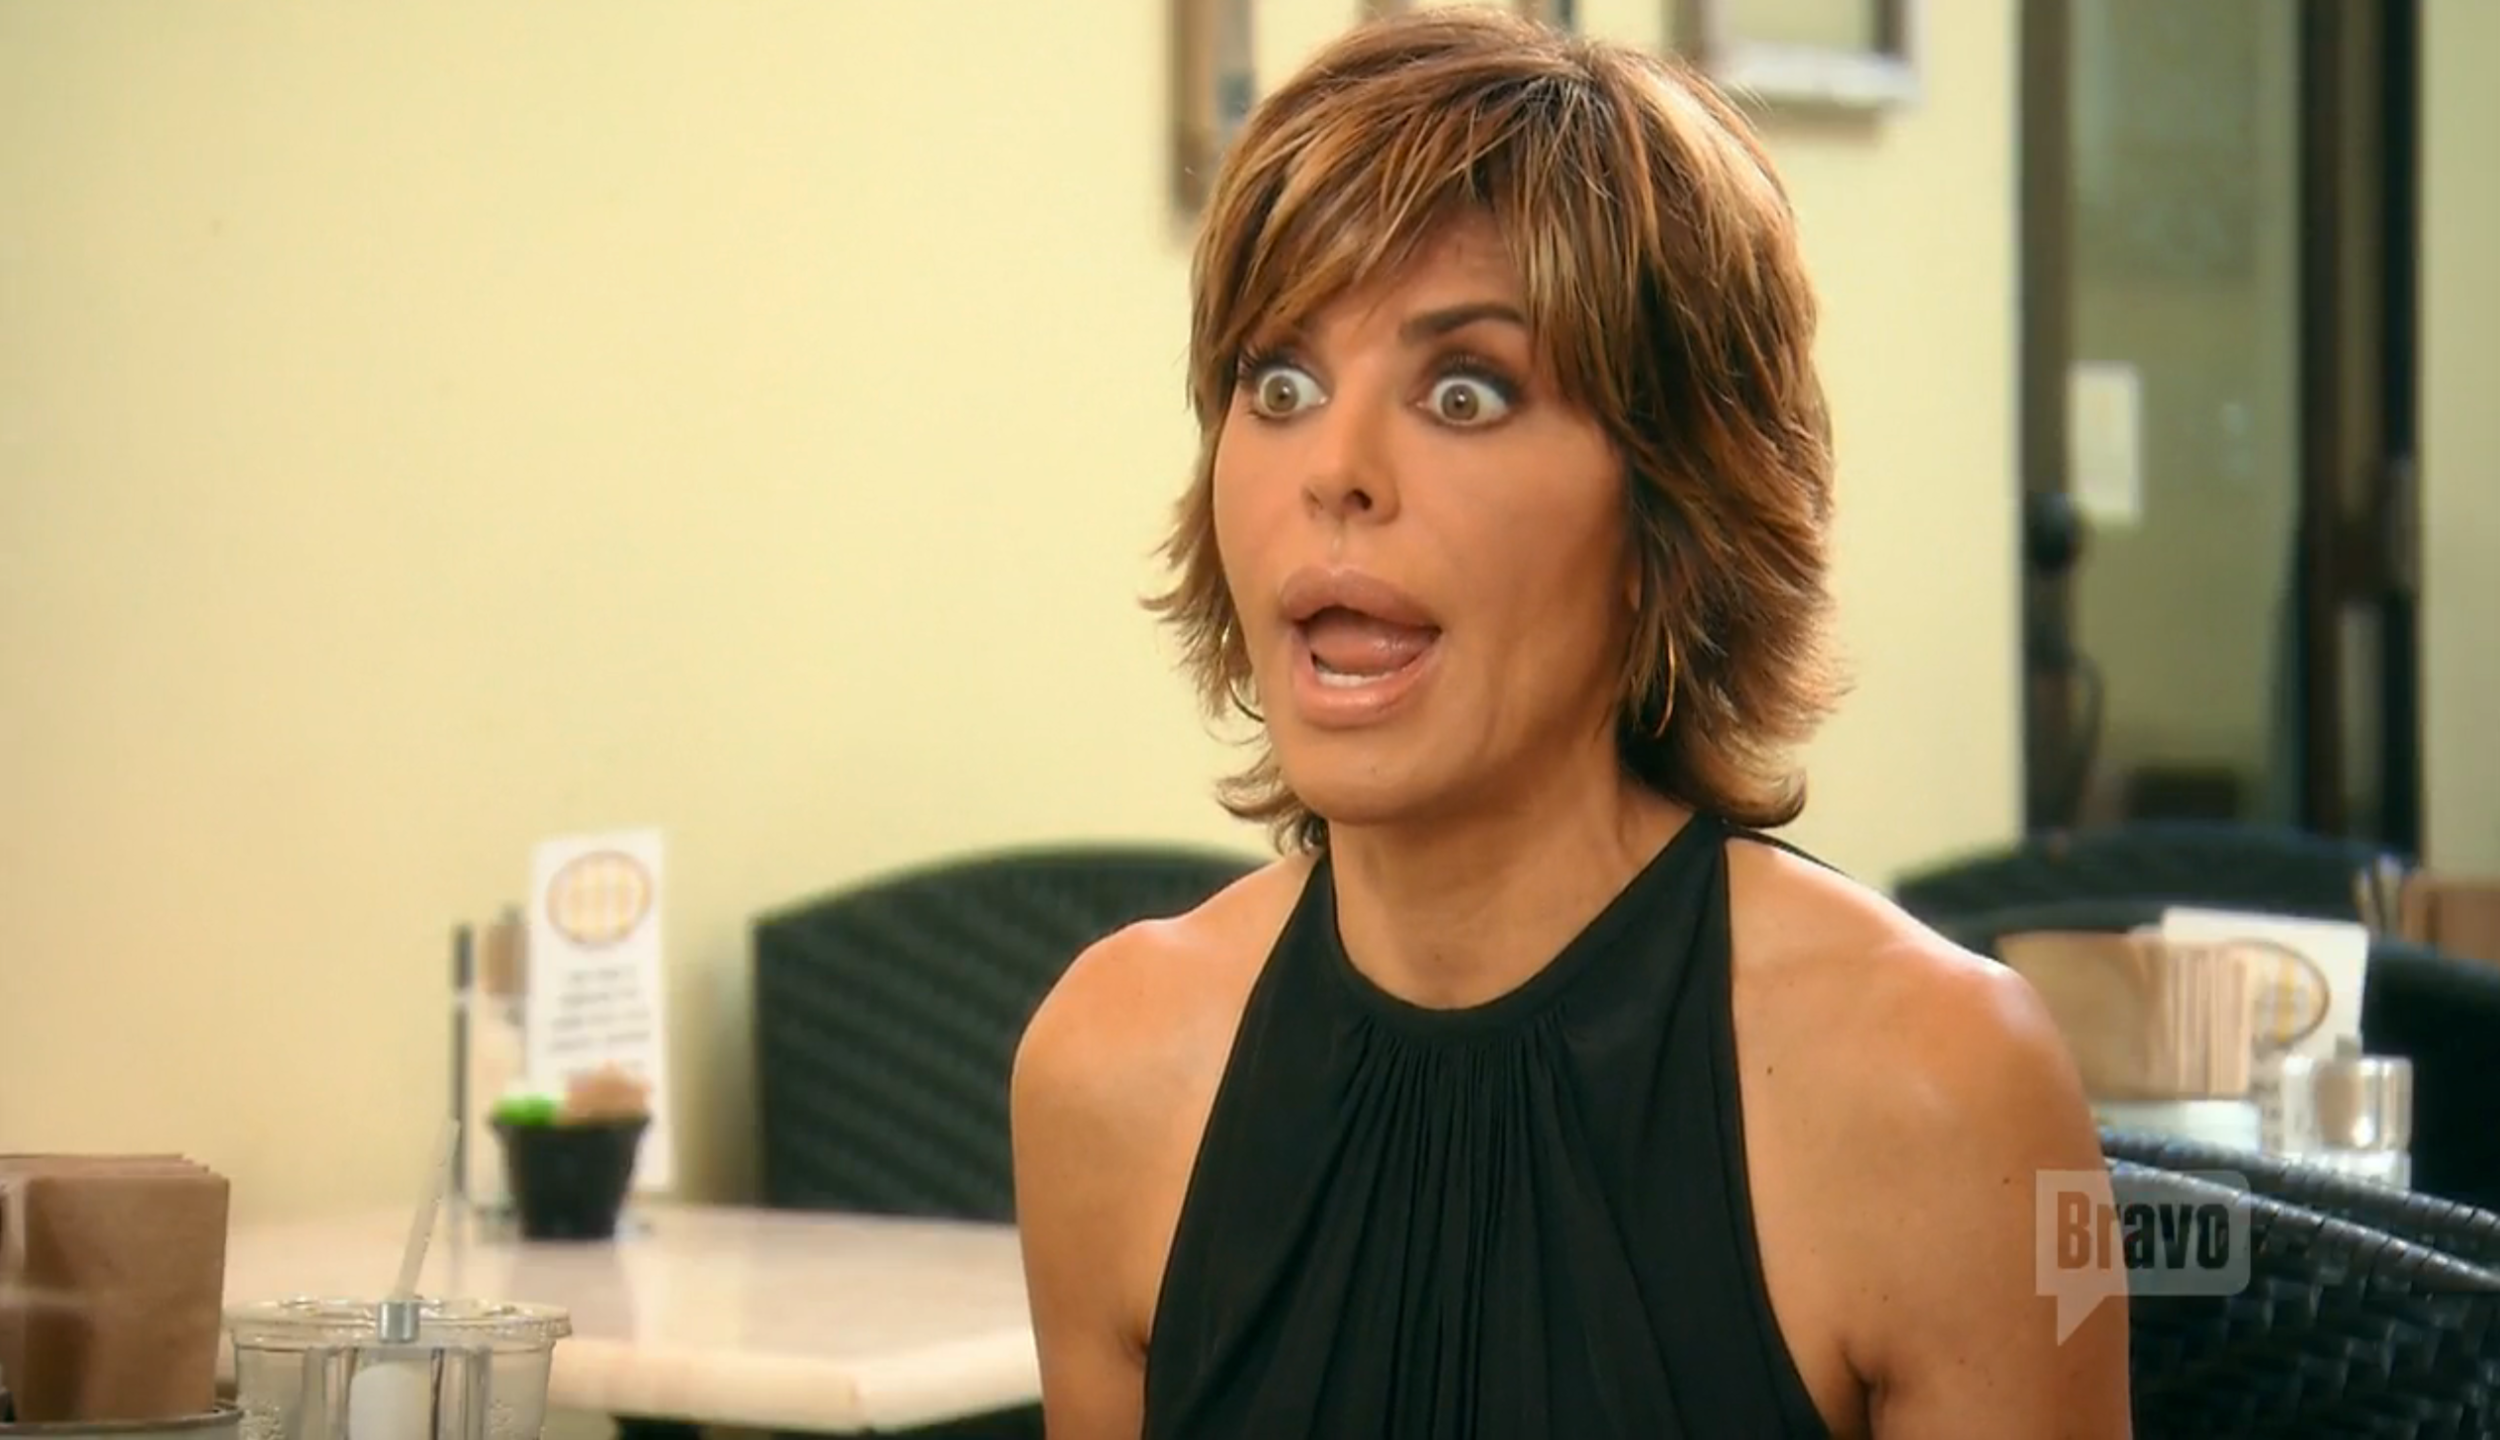 lisa-rinna-breakfast-kathryn-edwards